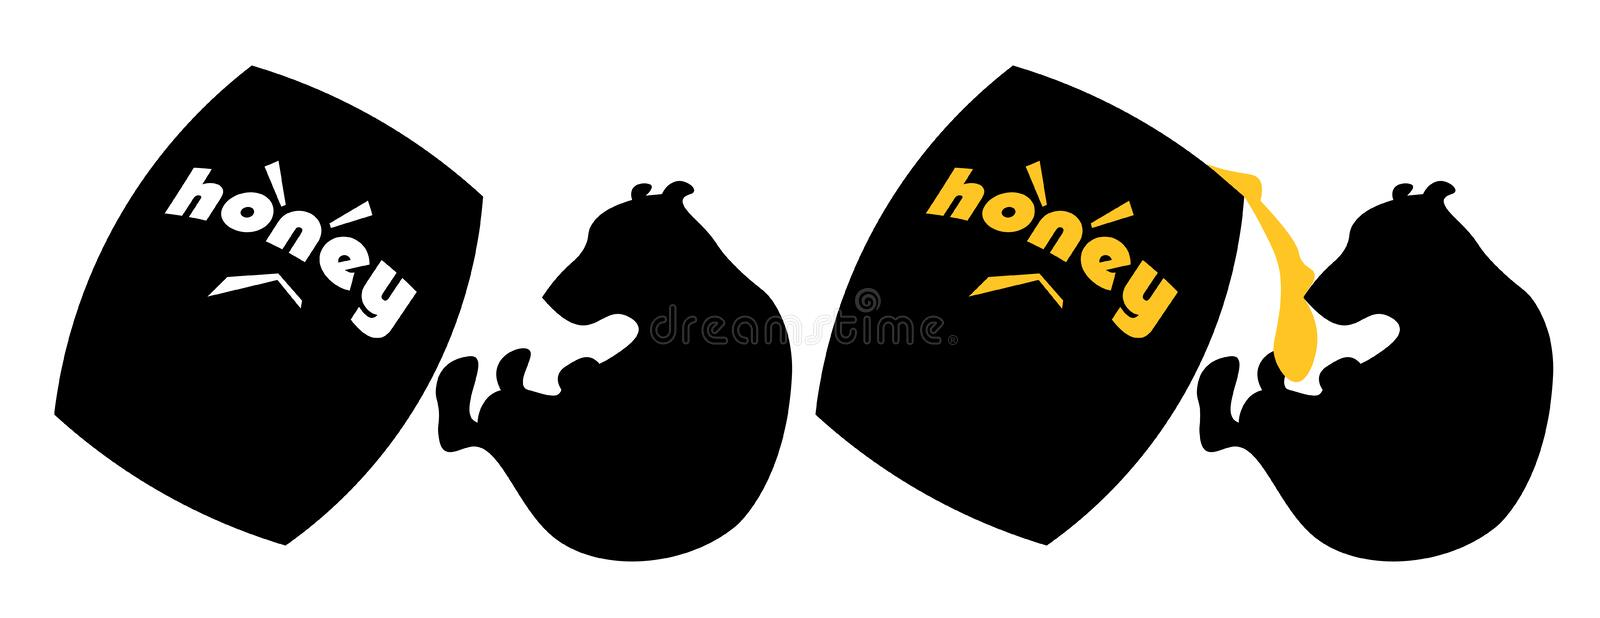 Black cartoon silhouettes of a bear and a barrel of honey falling on it royalty free illustration